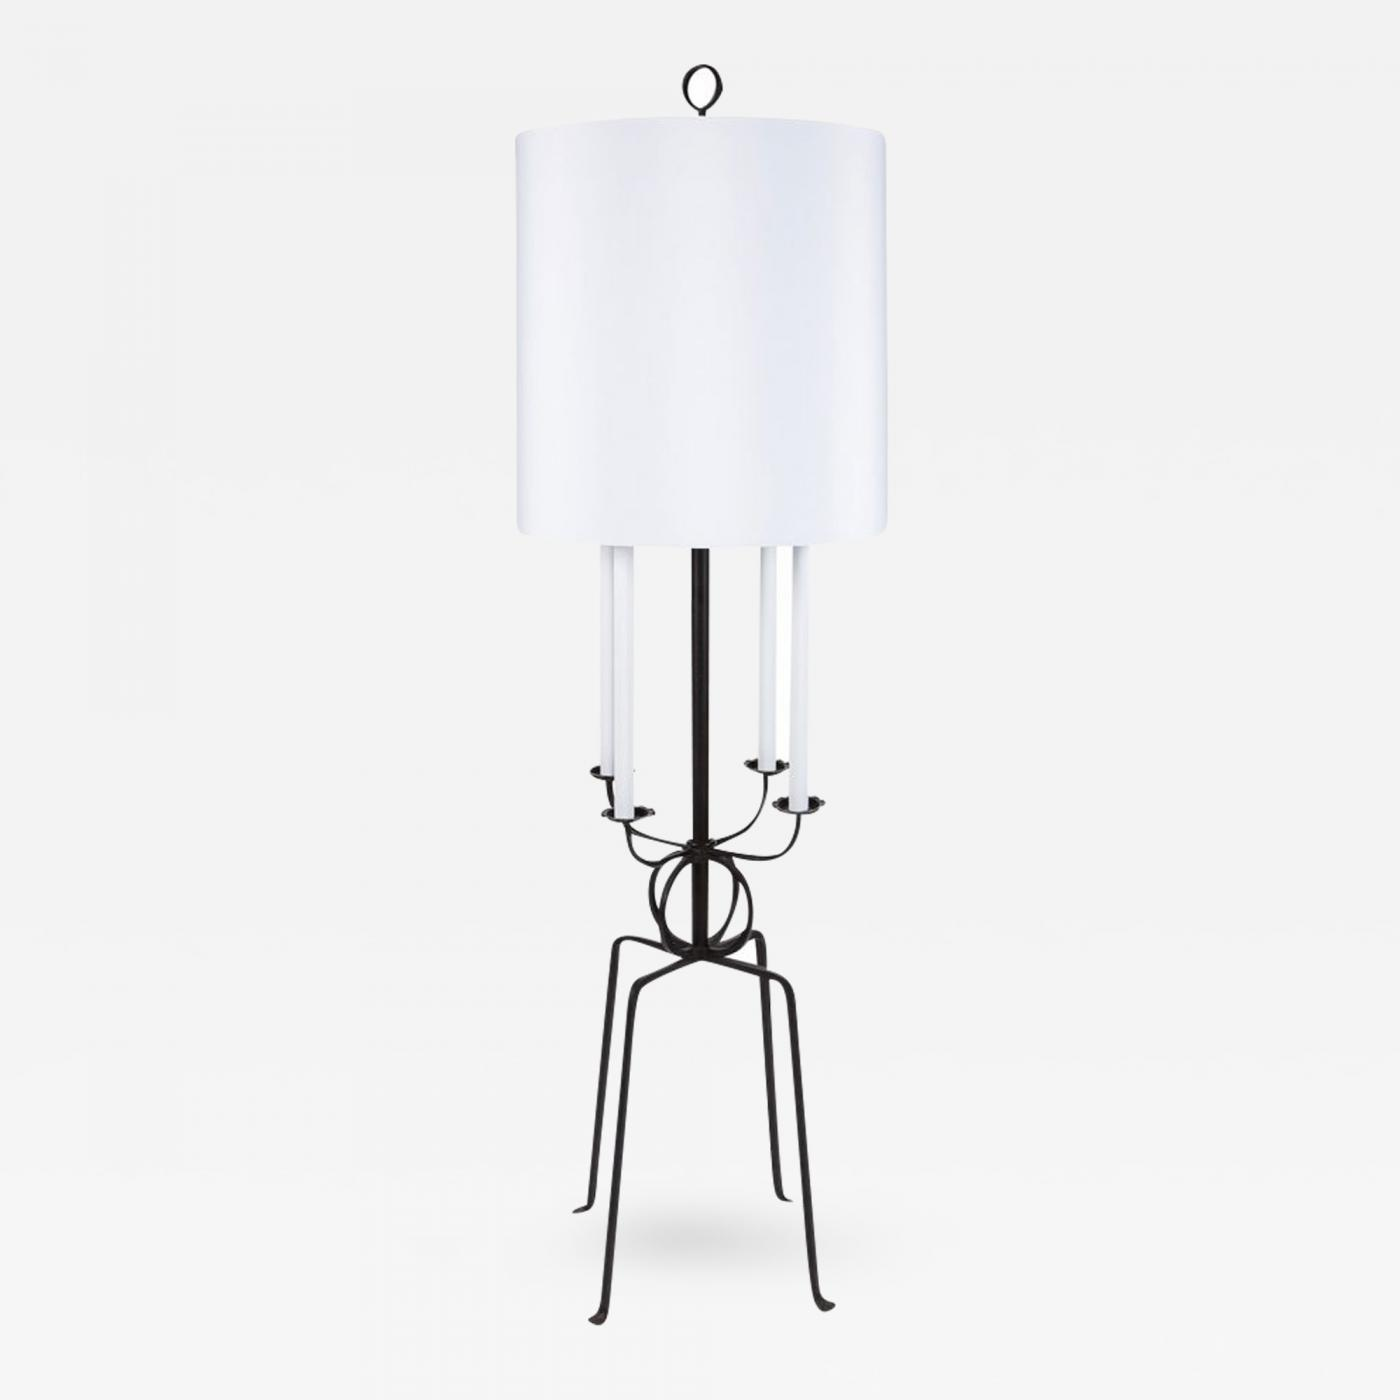 Tommi parzinger tommi parzinger candlestick floor lamp listings furniture lighting floor lamps aloadofball Image collections